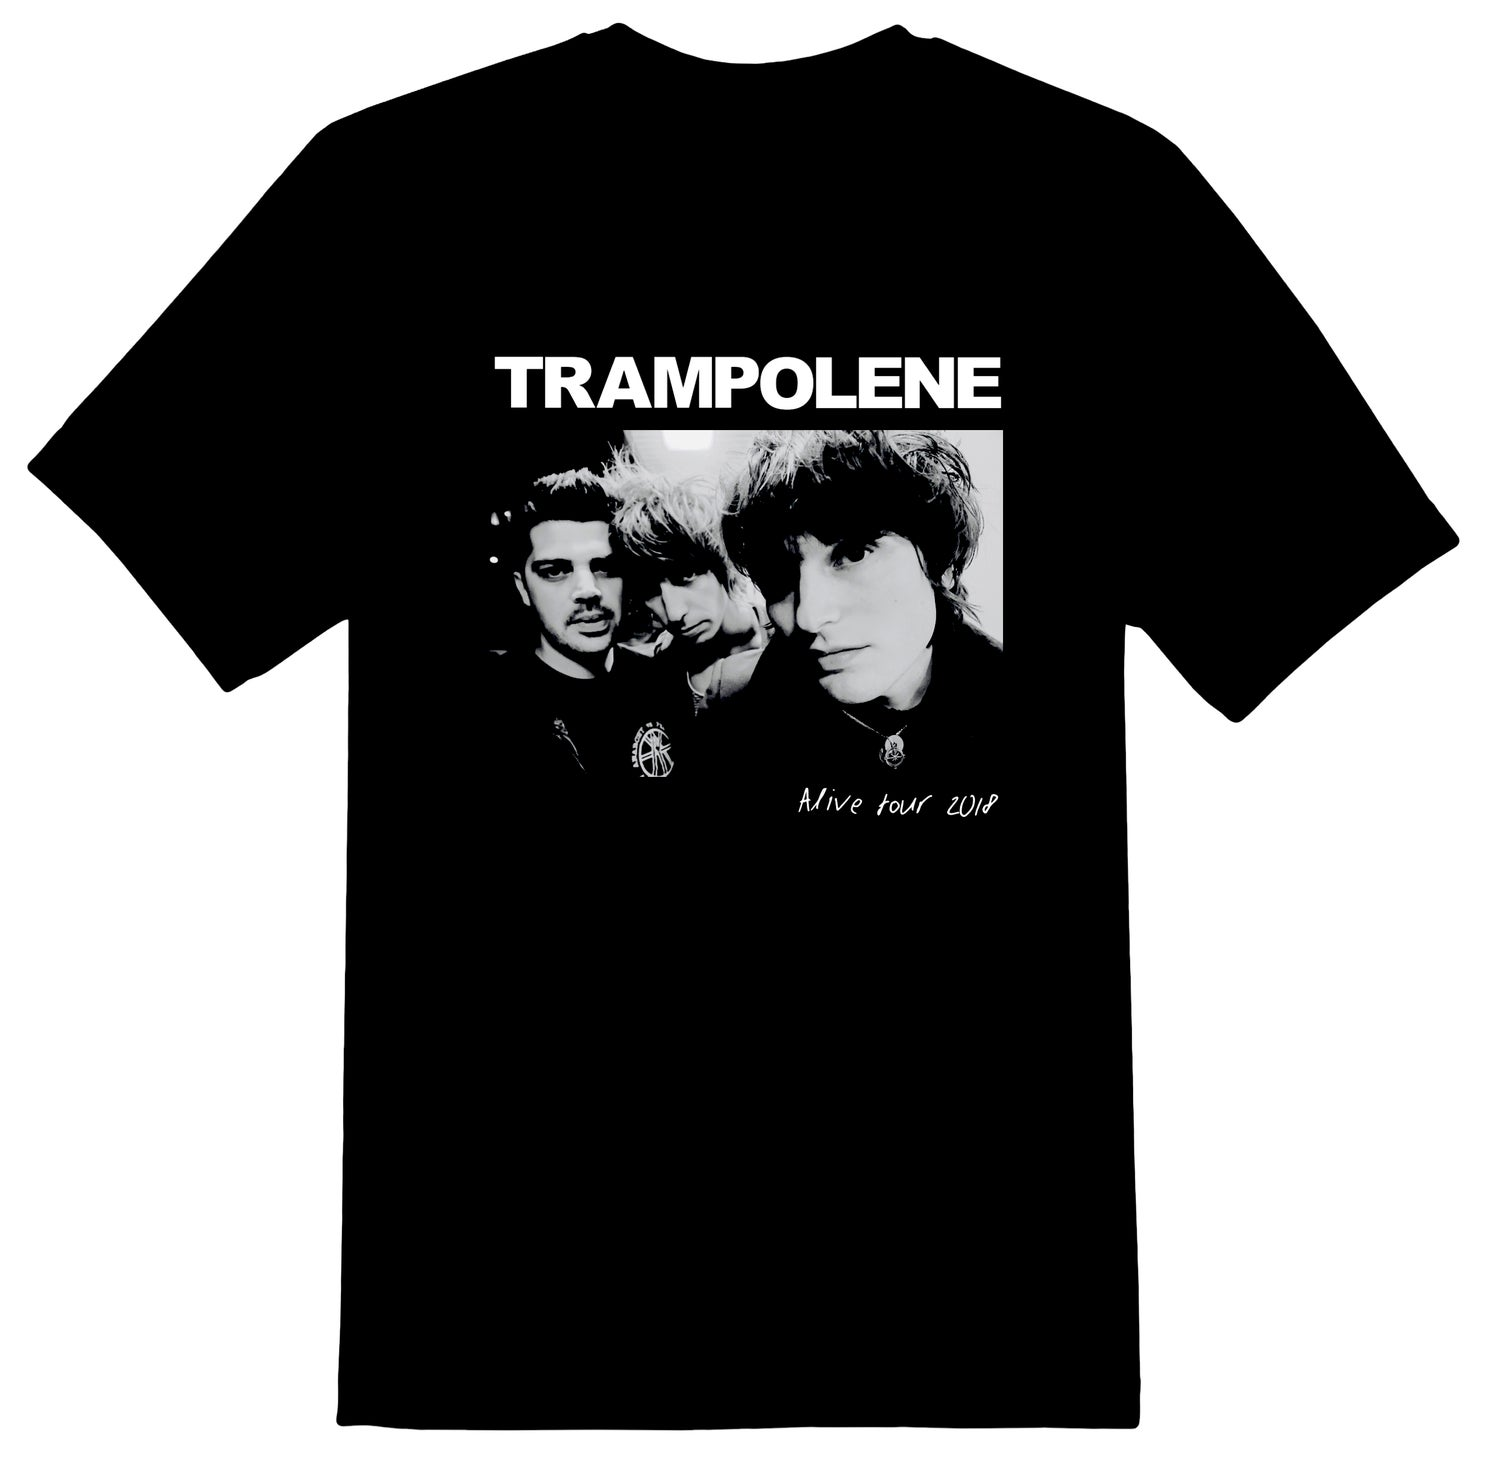 Image of TRAMPOLENE 2018 photo t-shirt plus FREE mini poster